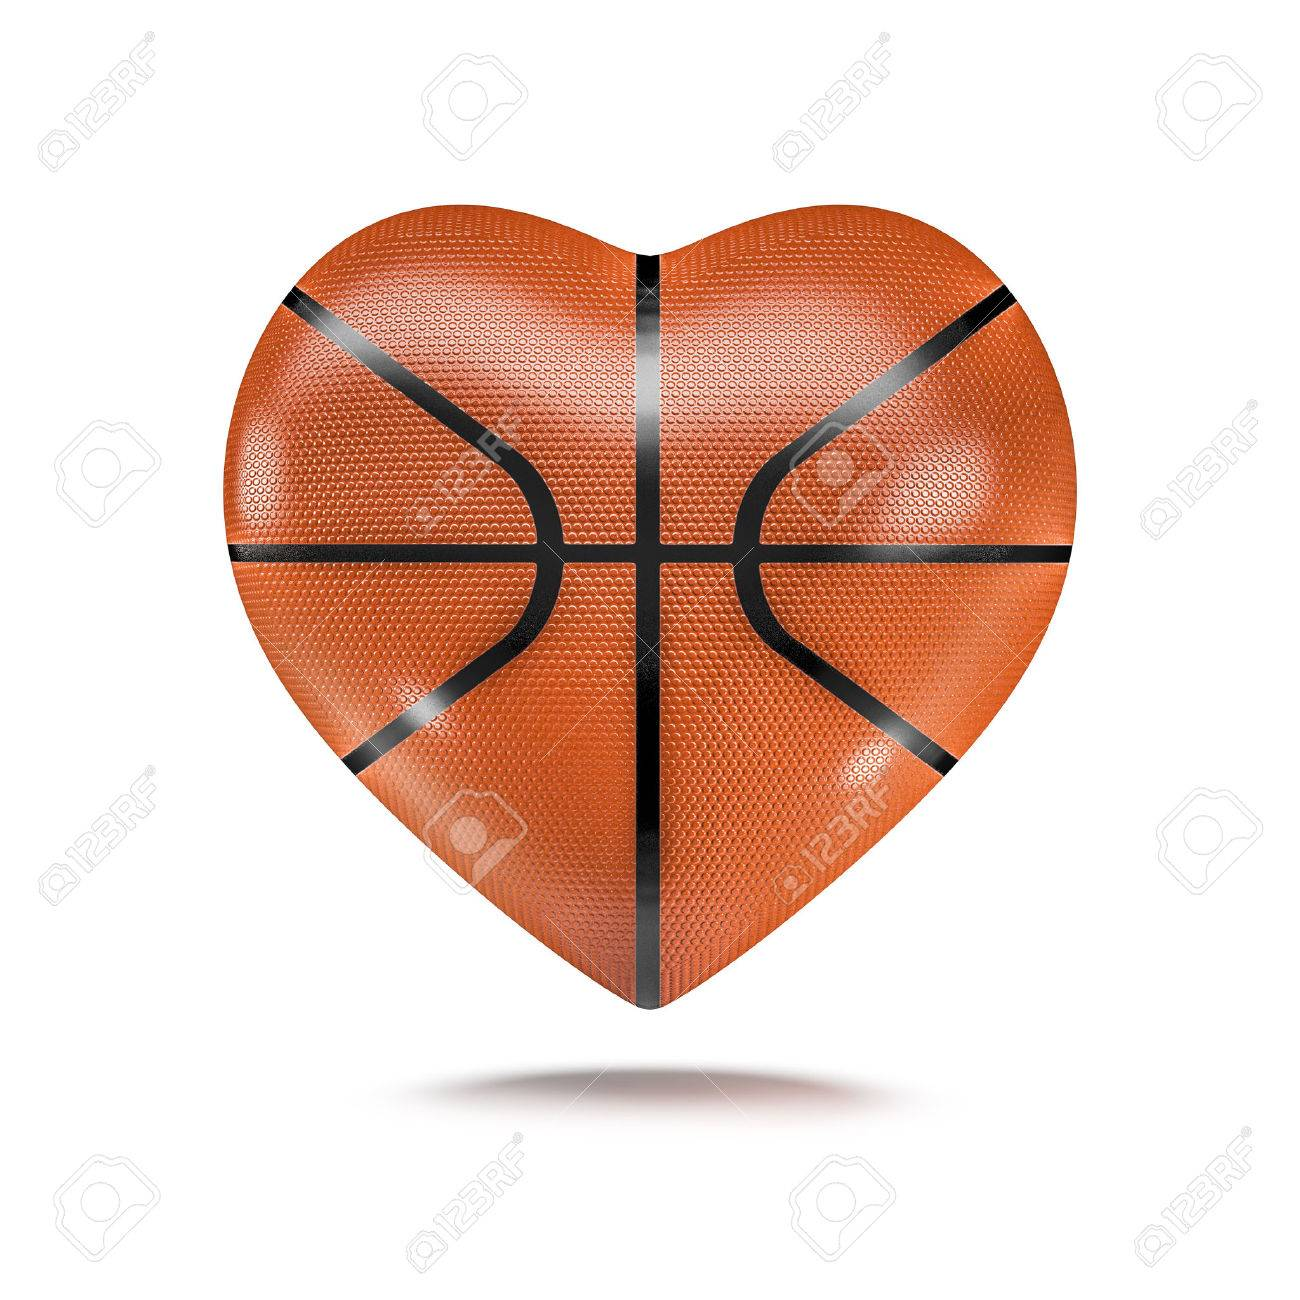 basketball heart 3d render of heart shaped basketball stock photo rh 123rf com heart shaped basketball png heart shaped basketball png